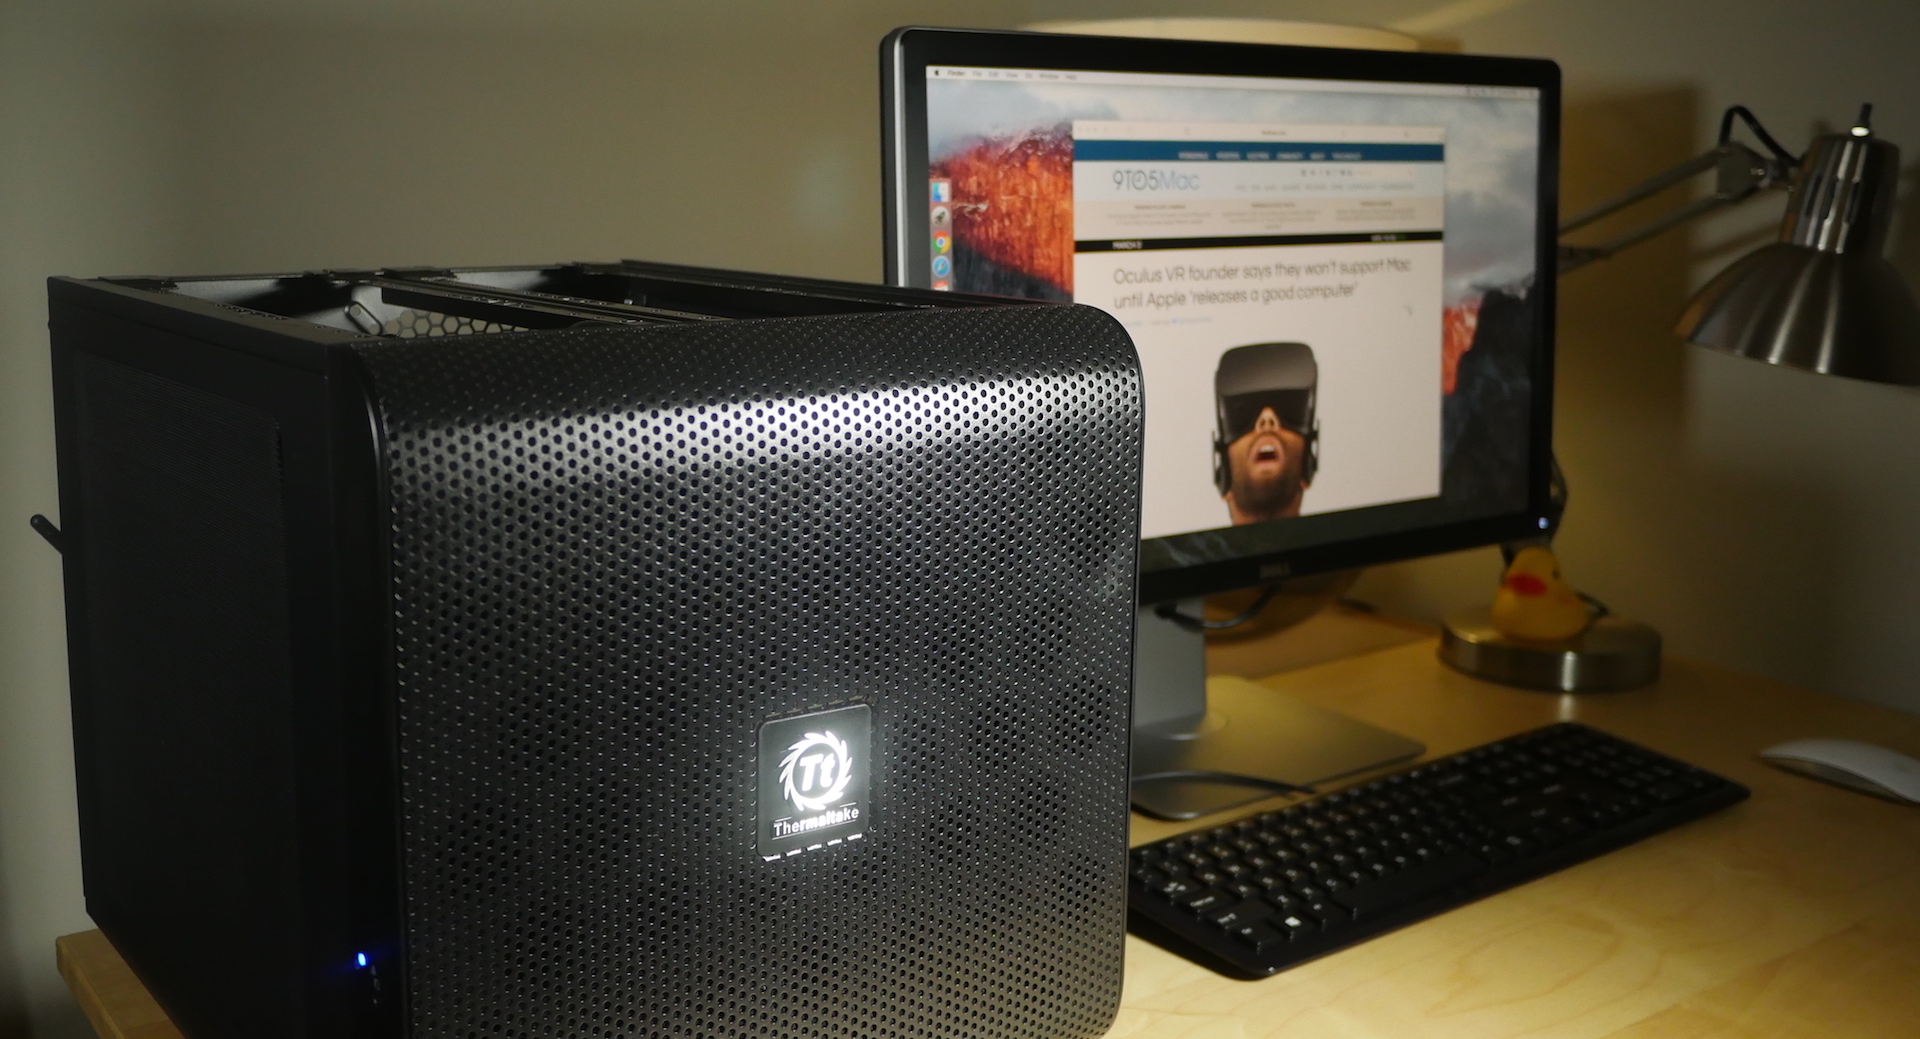 Building a (sub-$1000) Hackintosh that meets the Oculus Rift